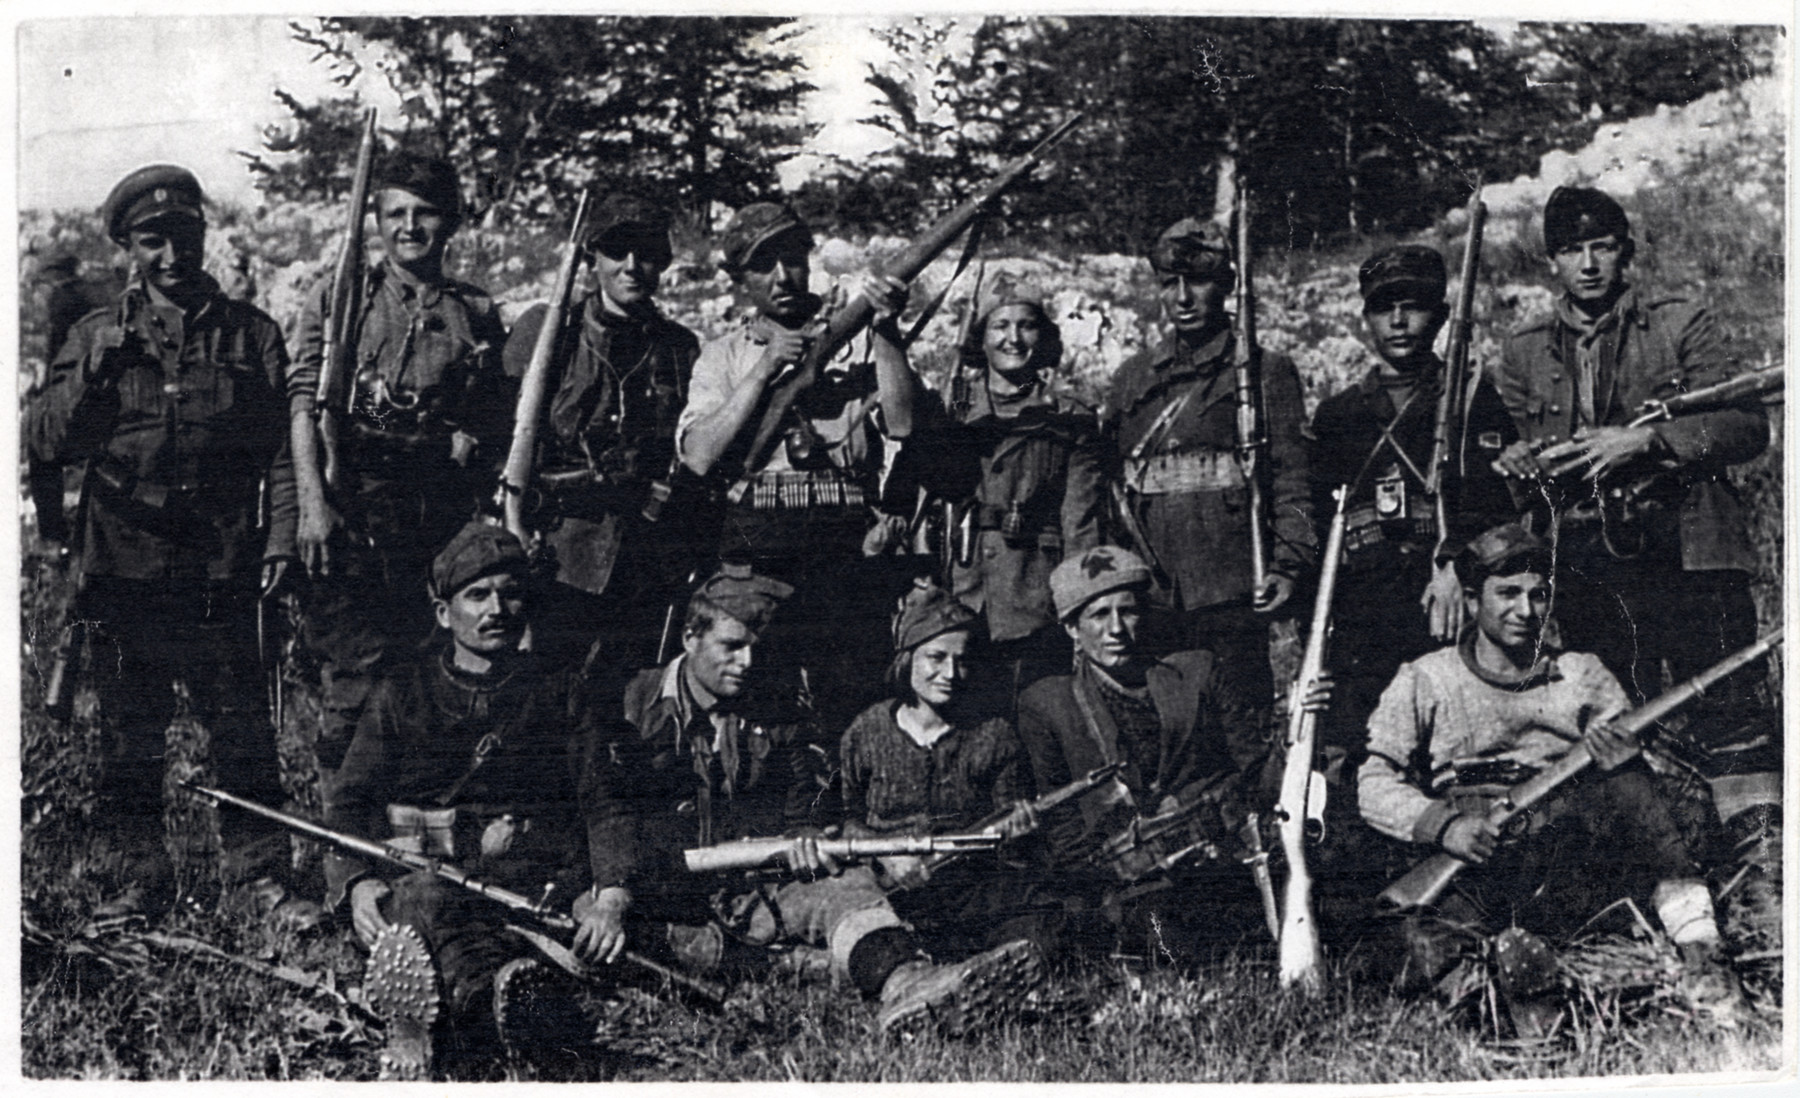 """Macedonian partisans of the detachment """"Damyan Gruev.""""    Among those pictured are Jamila Kolonomos (back row, fourth from the left) and Adela Faradji (seated front row, center)."""